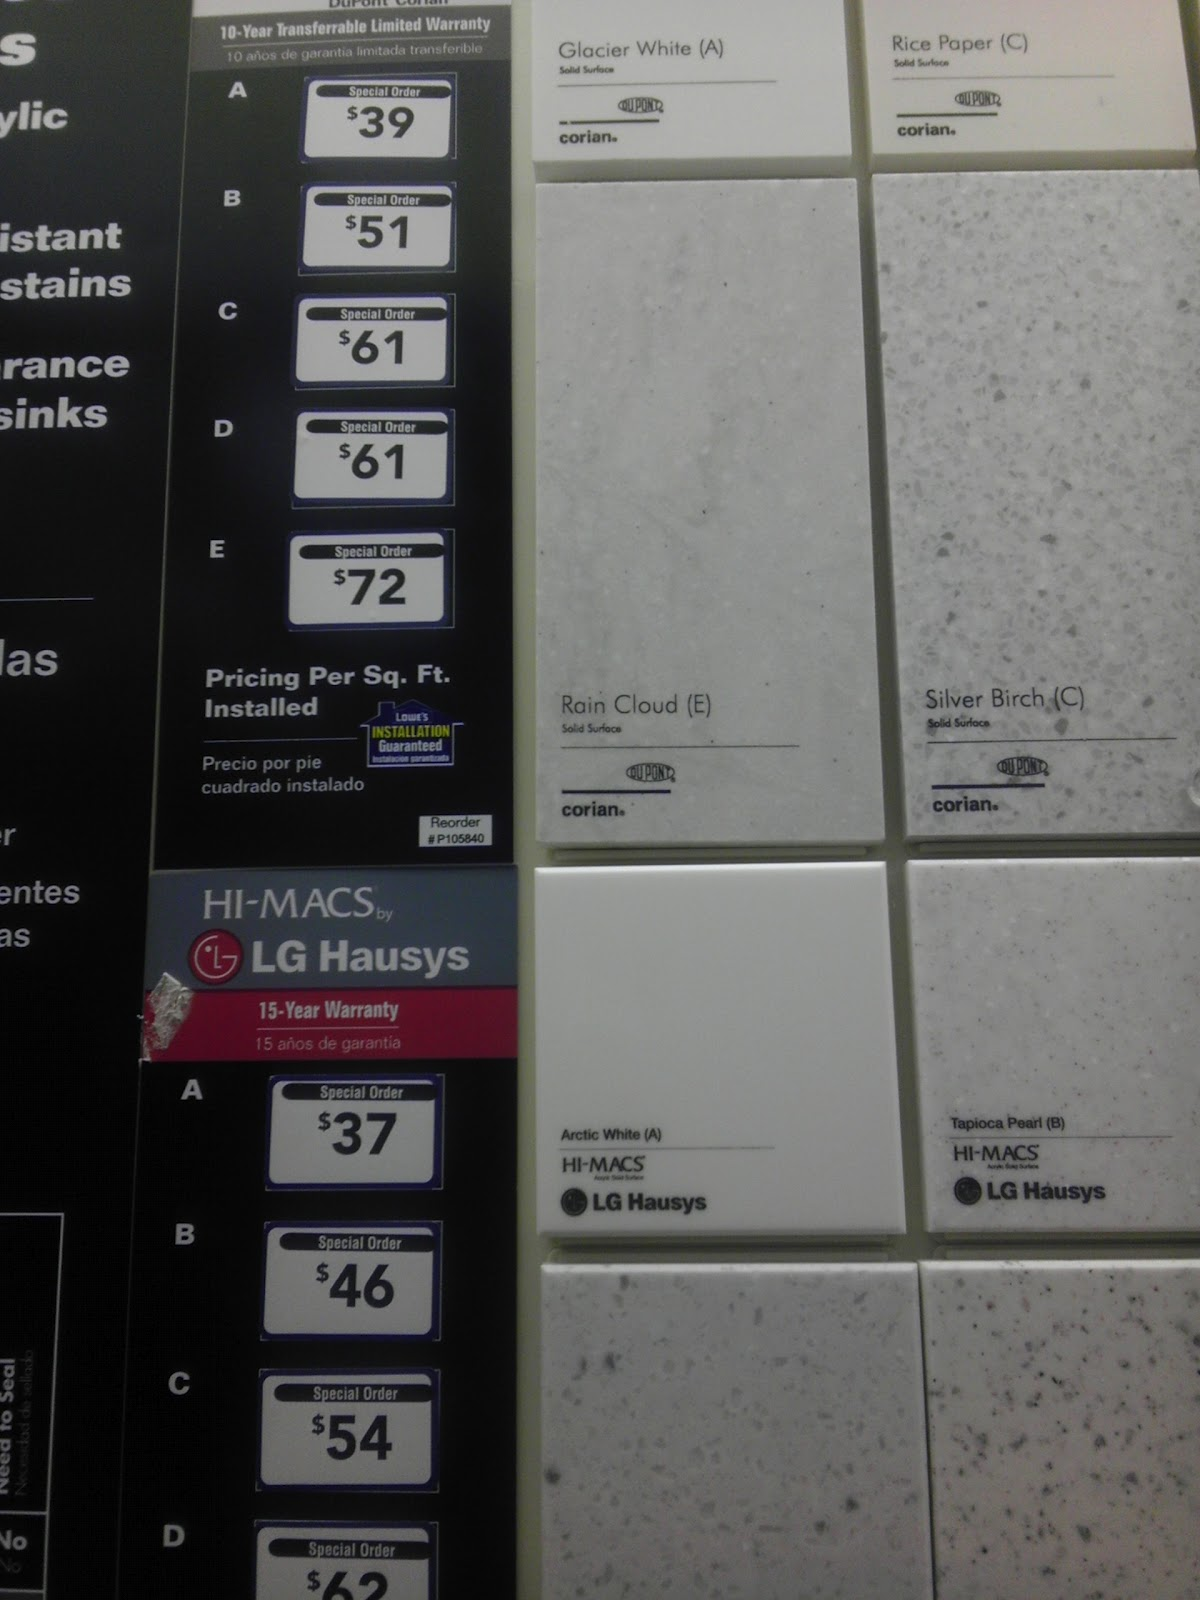 awesome corian pricing per square foot #2: I need to see how the counters compare against Corian, but Iu0027m liking the  pricing, two dollars less per square foot can add up.